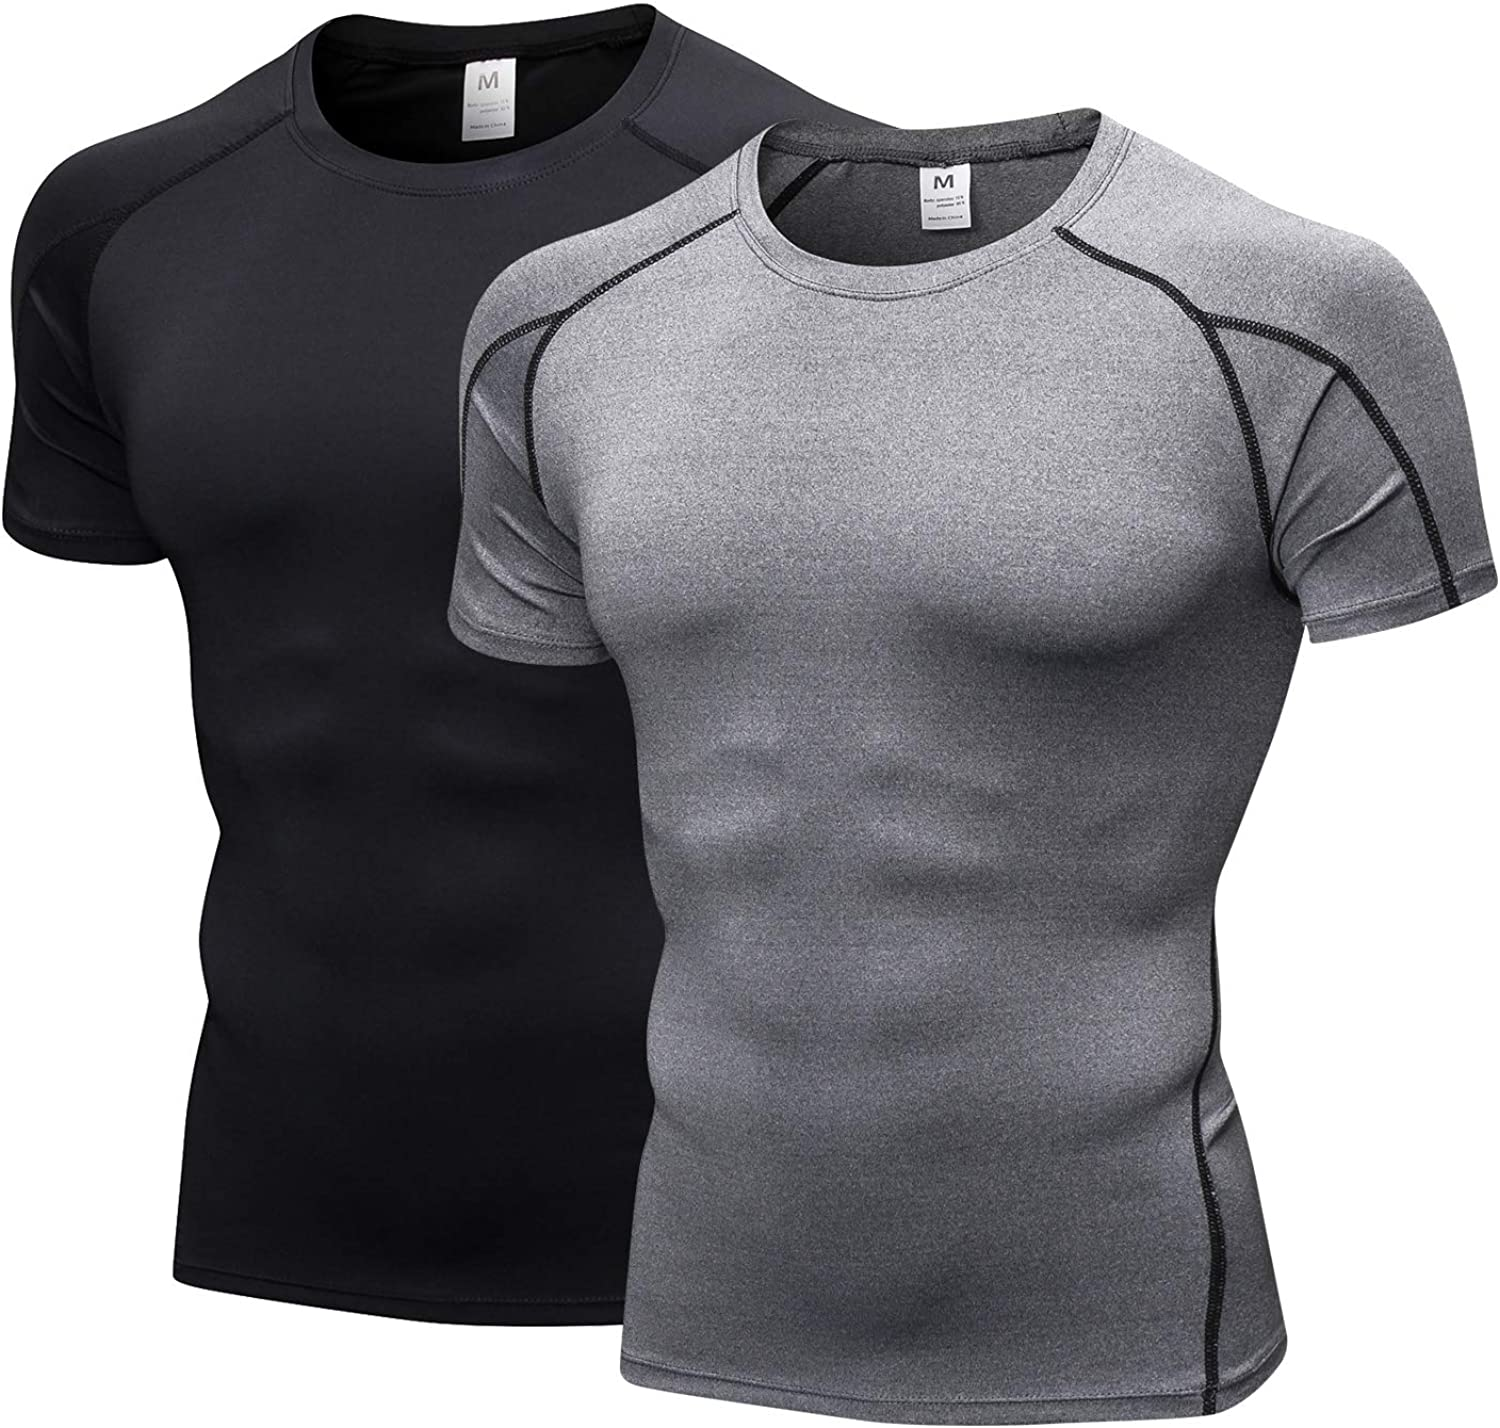 Men's Short Sleeve Compression Shirt Active Running Gym Workout Short Sleeve Quick Dry(2 Pack)